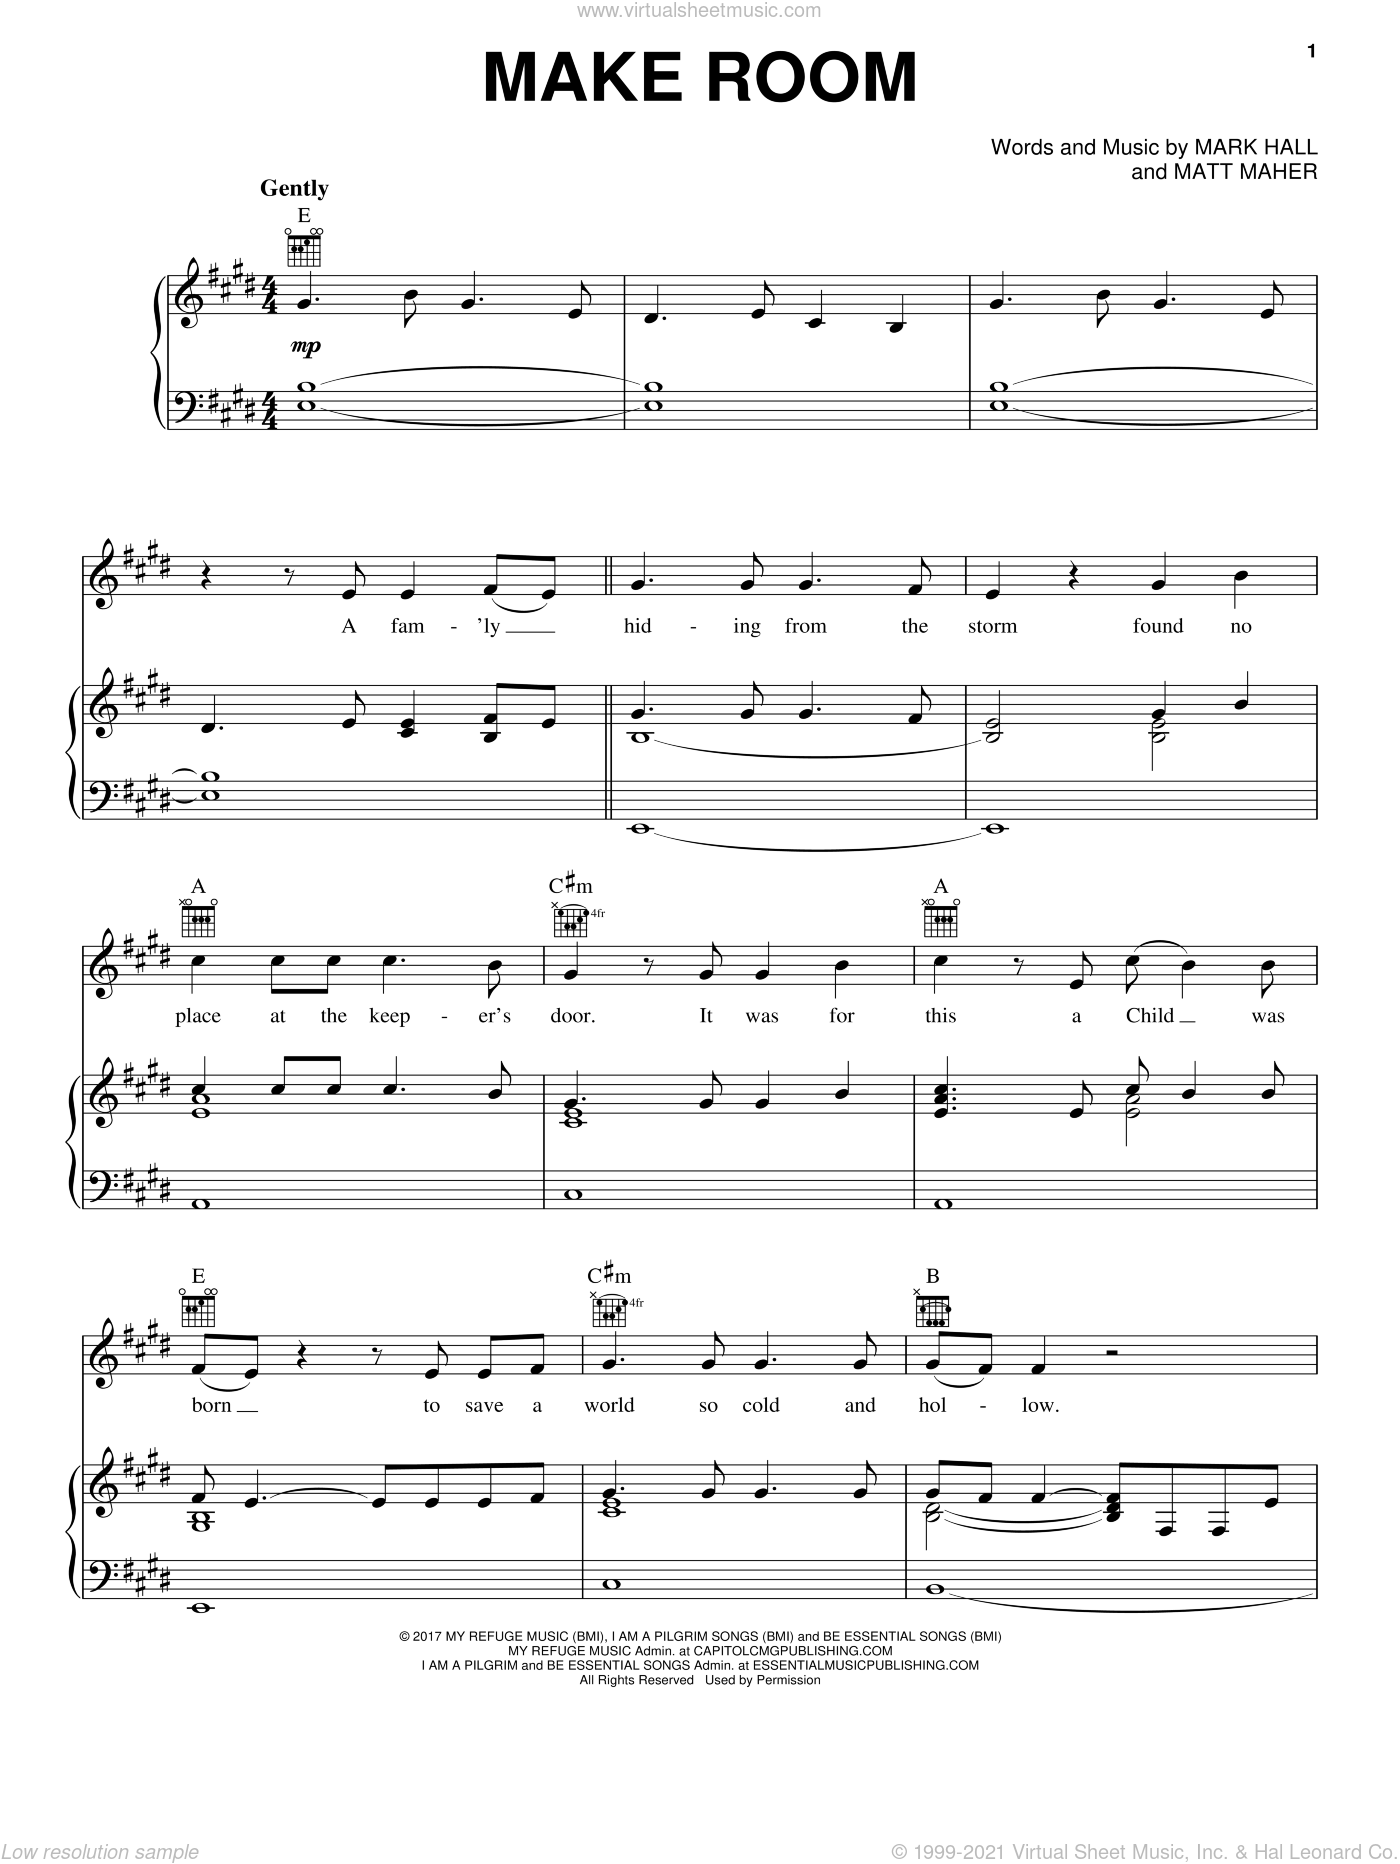 Make Room (feat. Matt Maher) sheet music for voice, piano or guitar by Casting Crowns, Mark Hall and Matt Maher, intermediate skill level